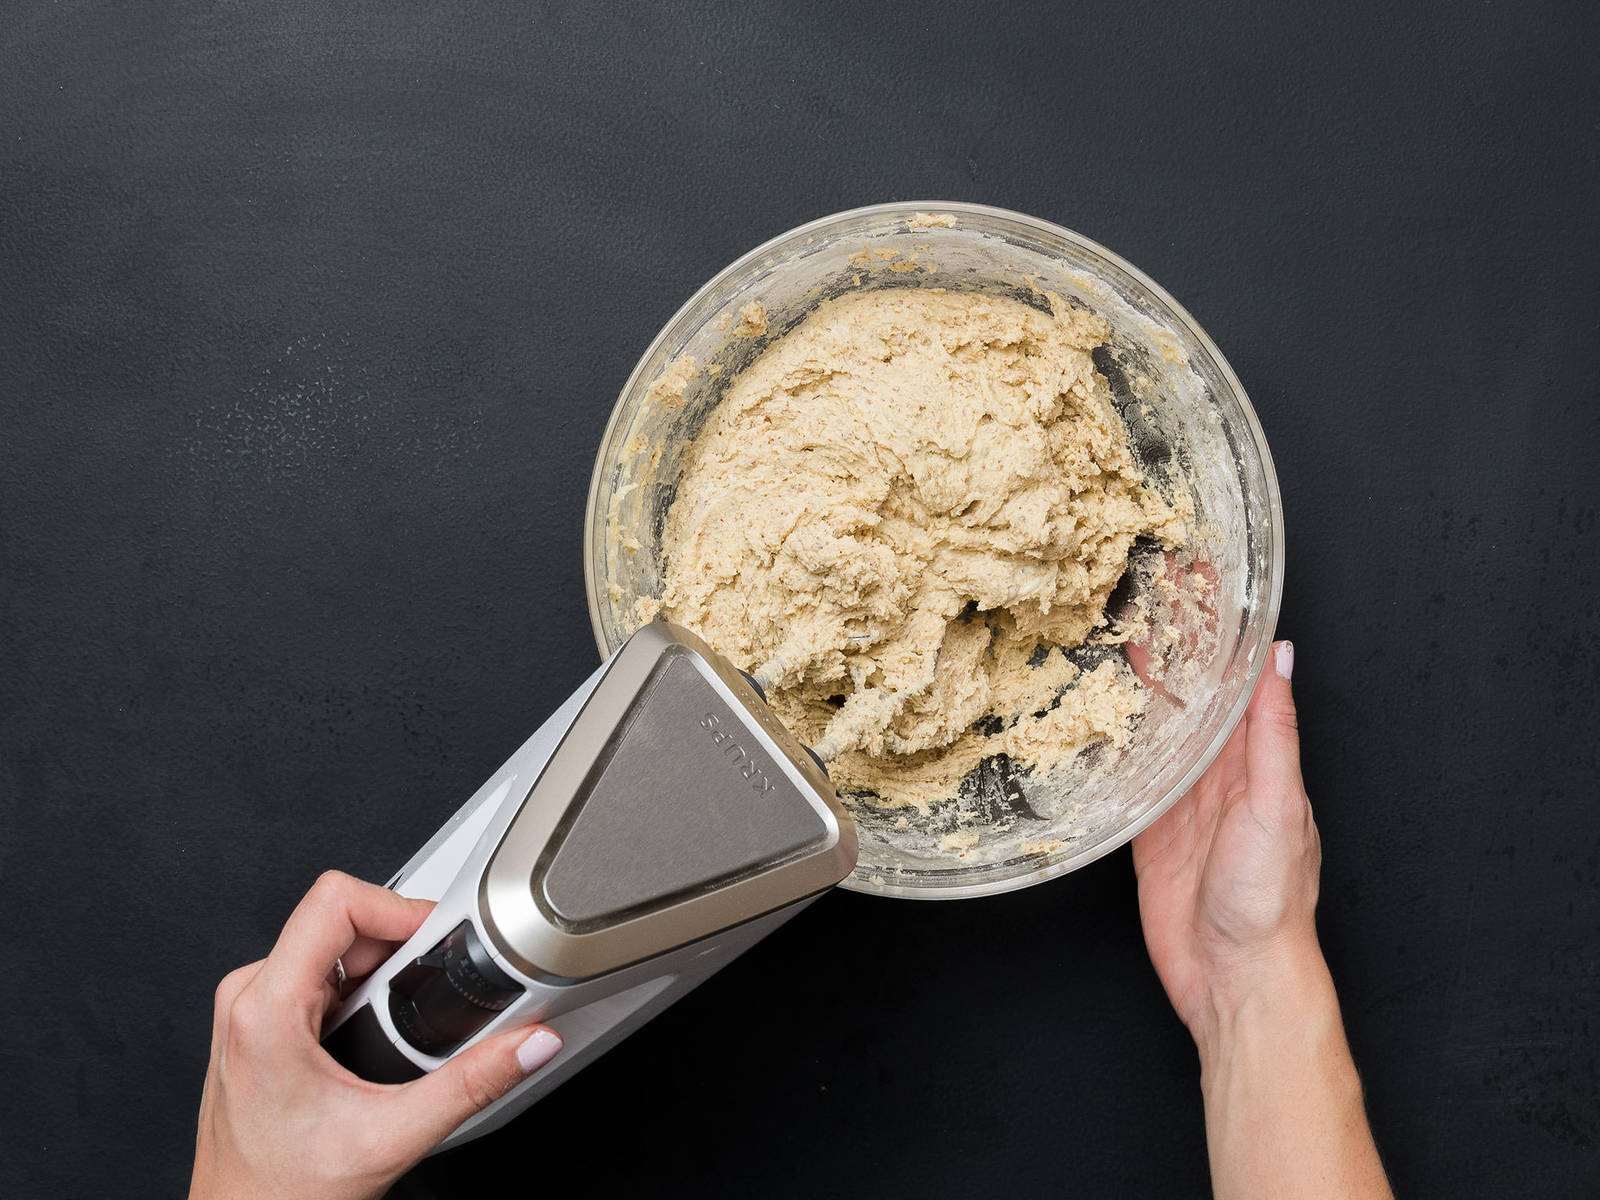 In a large bowl, mix flour and ground almonds and add to egg-butter mixture a little at a time, forming a fluffy dough. Add dough to a piping bag.